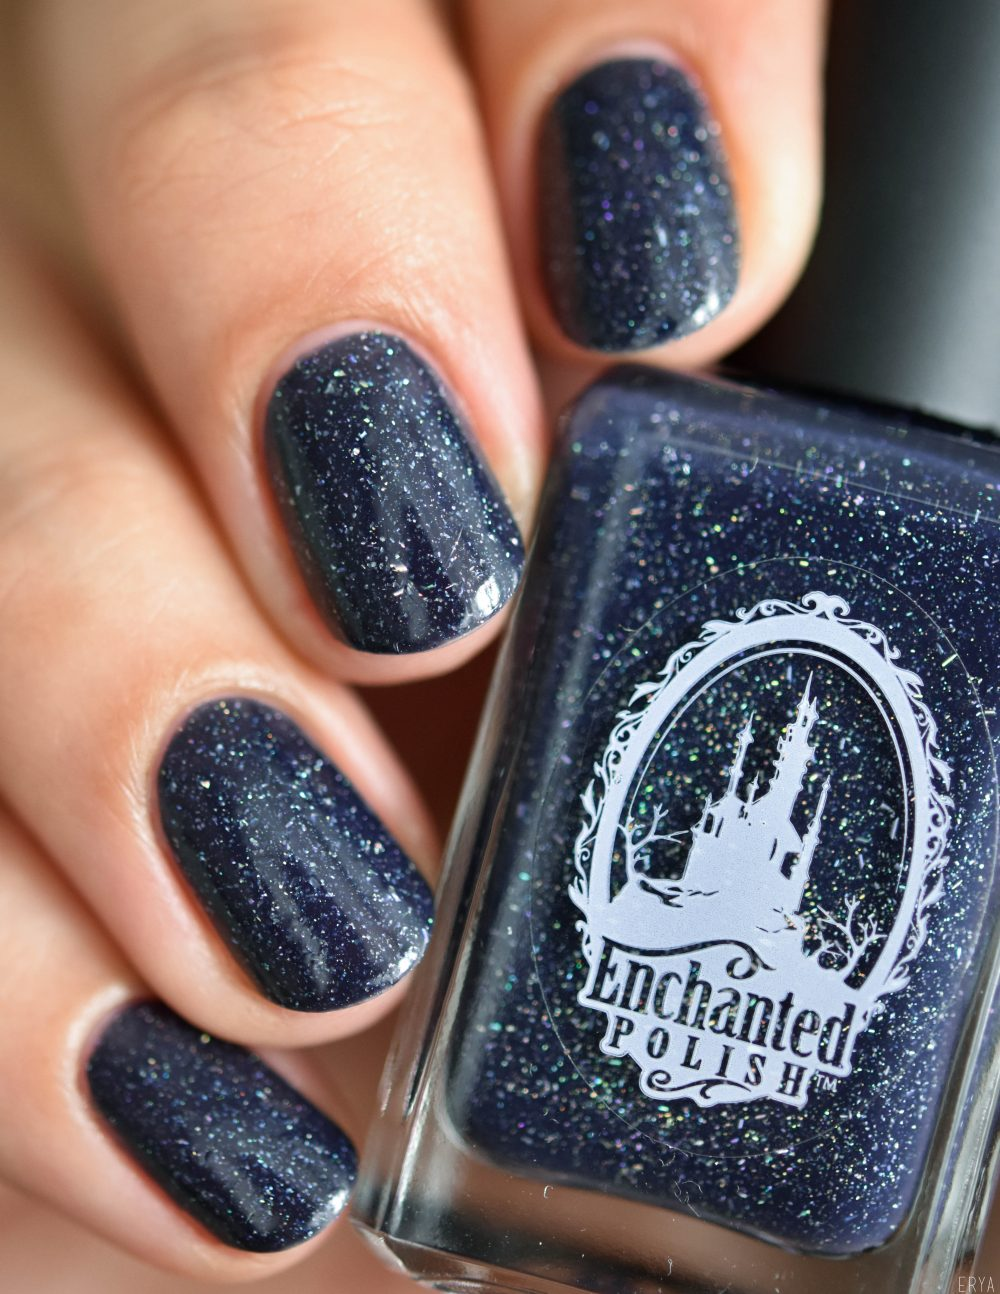 Enchanted_Polish-Rainstorm-1